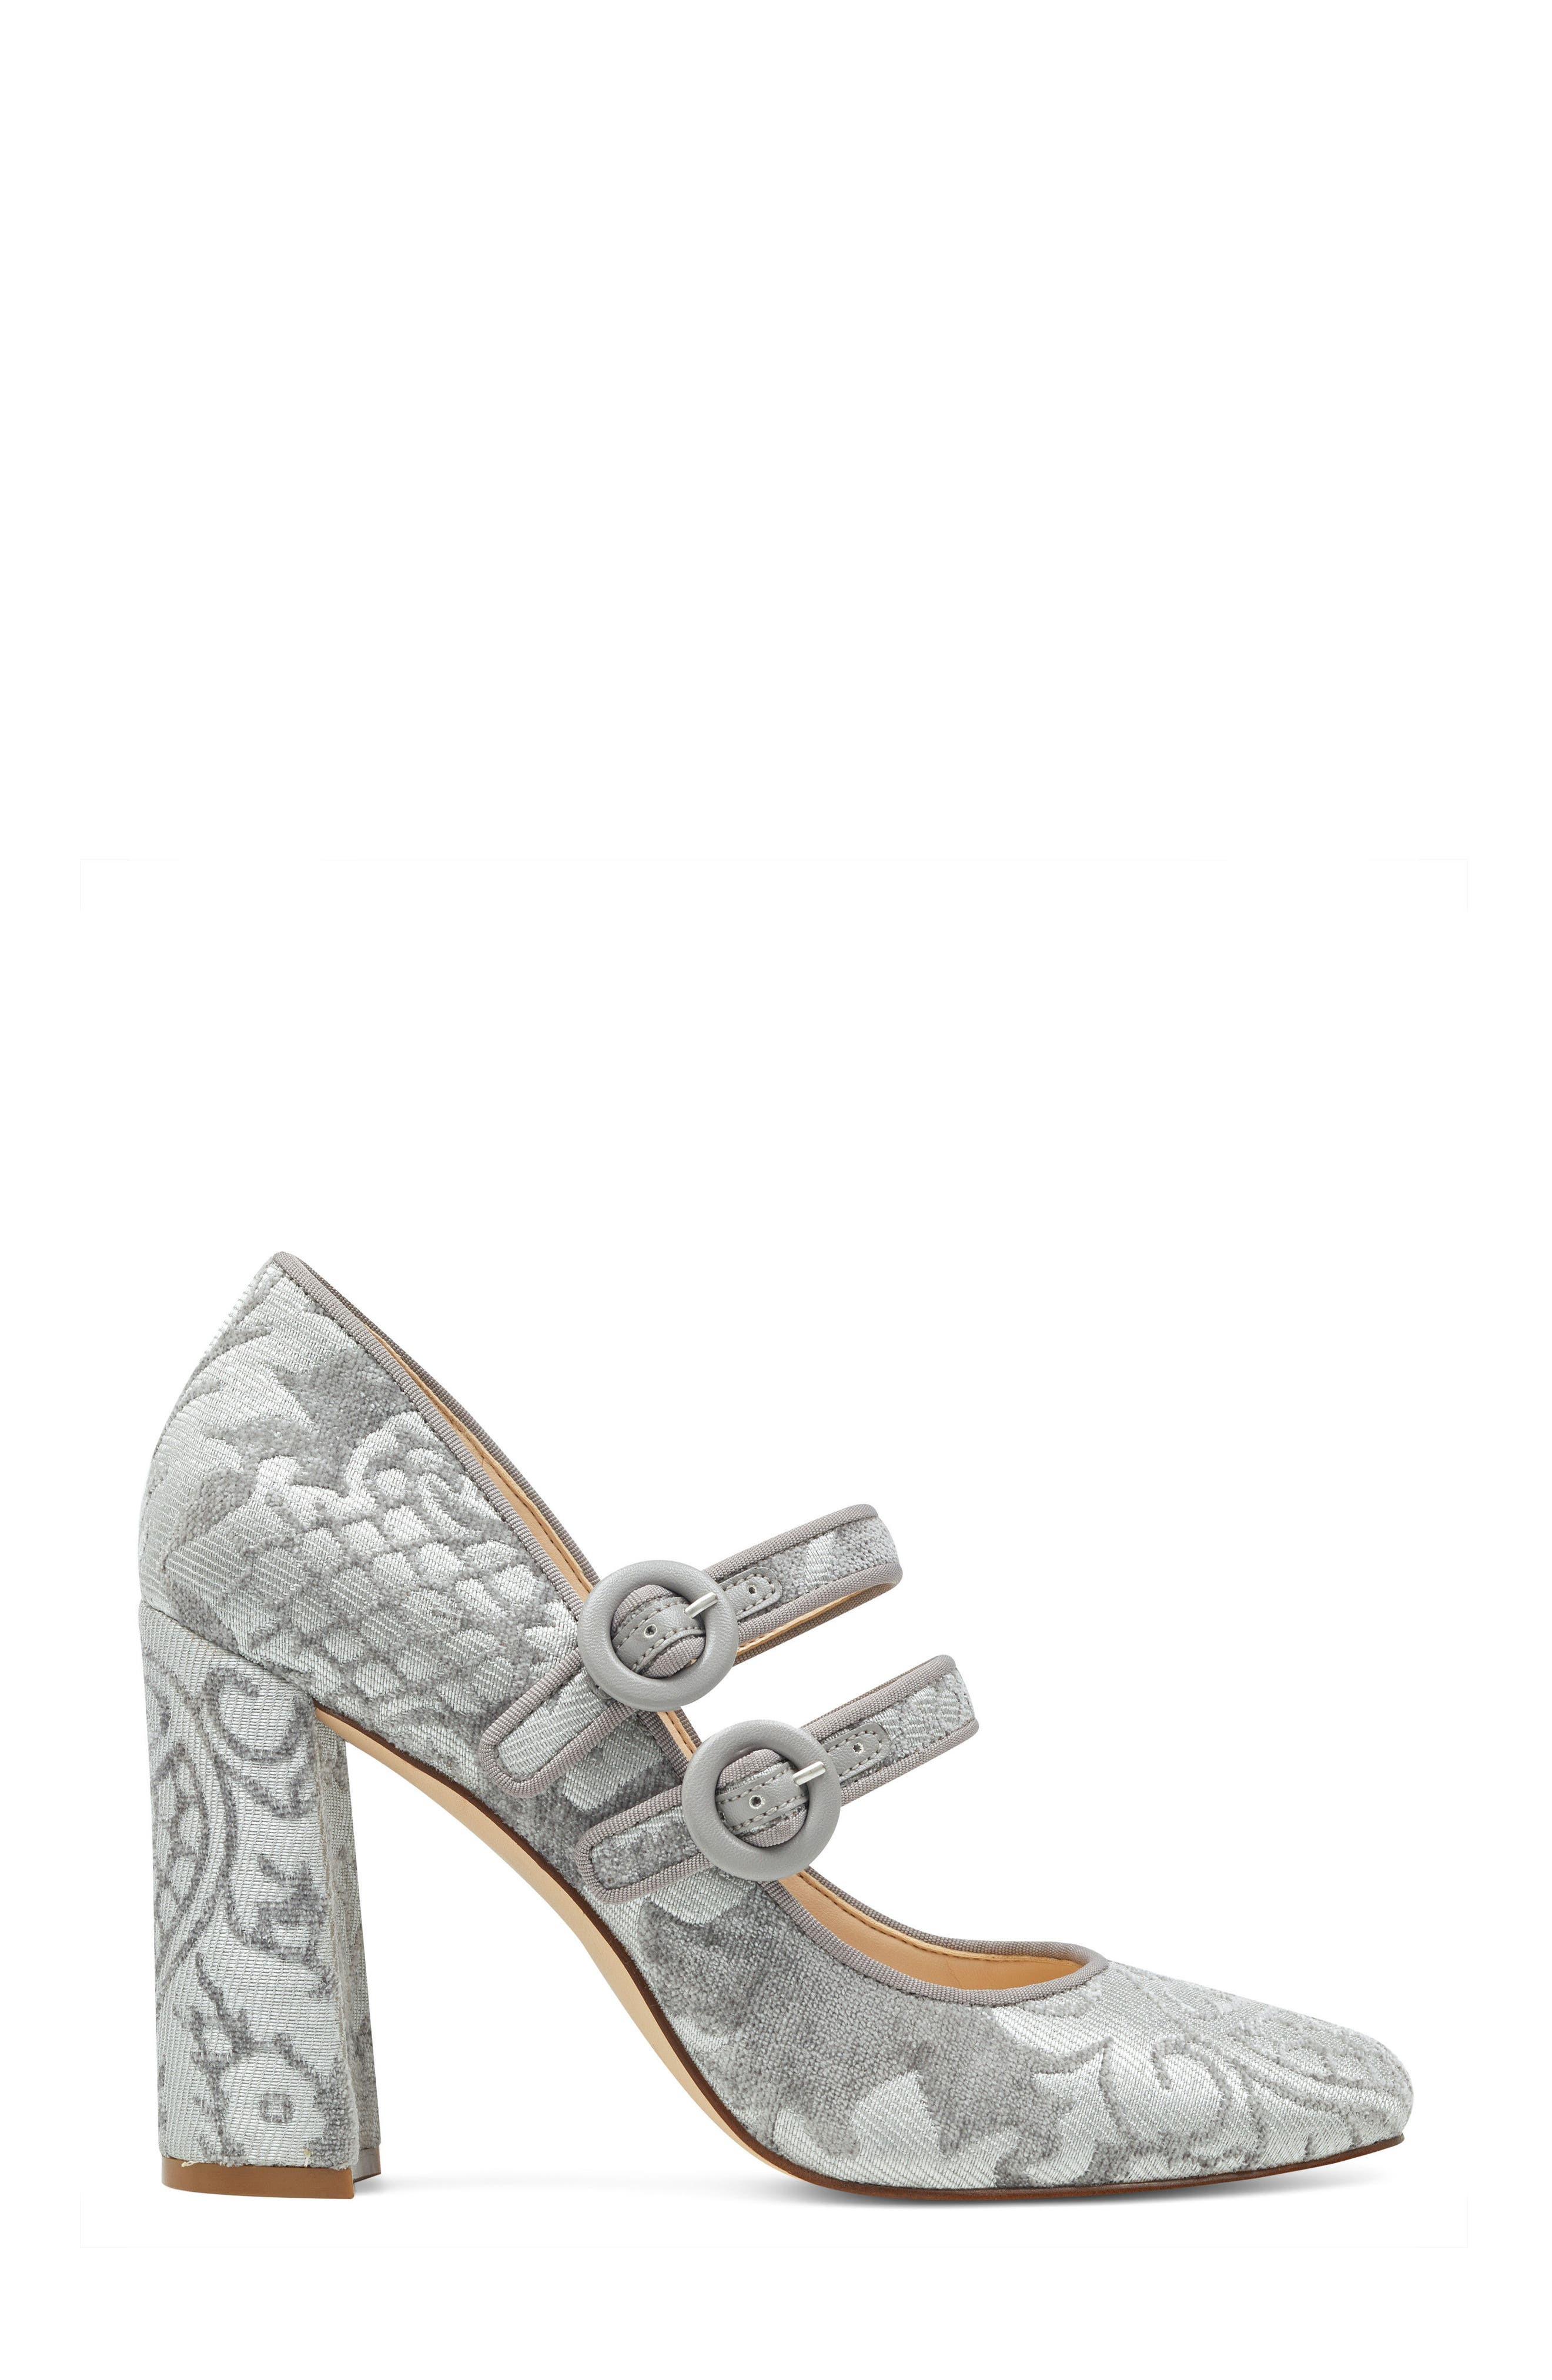 Dabney Double Strap Mary Jane Pump,                             Alternate thumbnail 10, color,